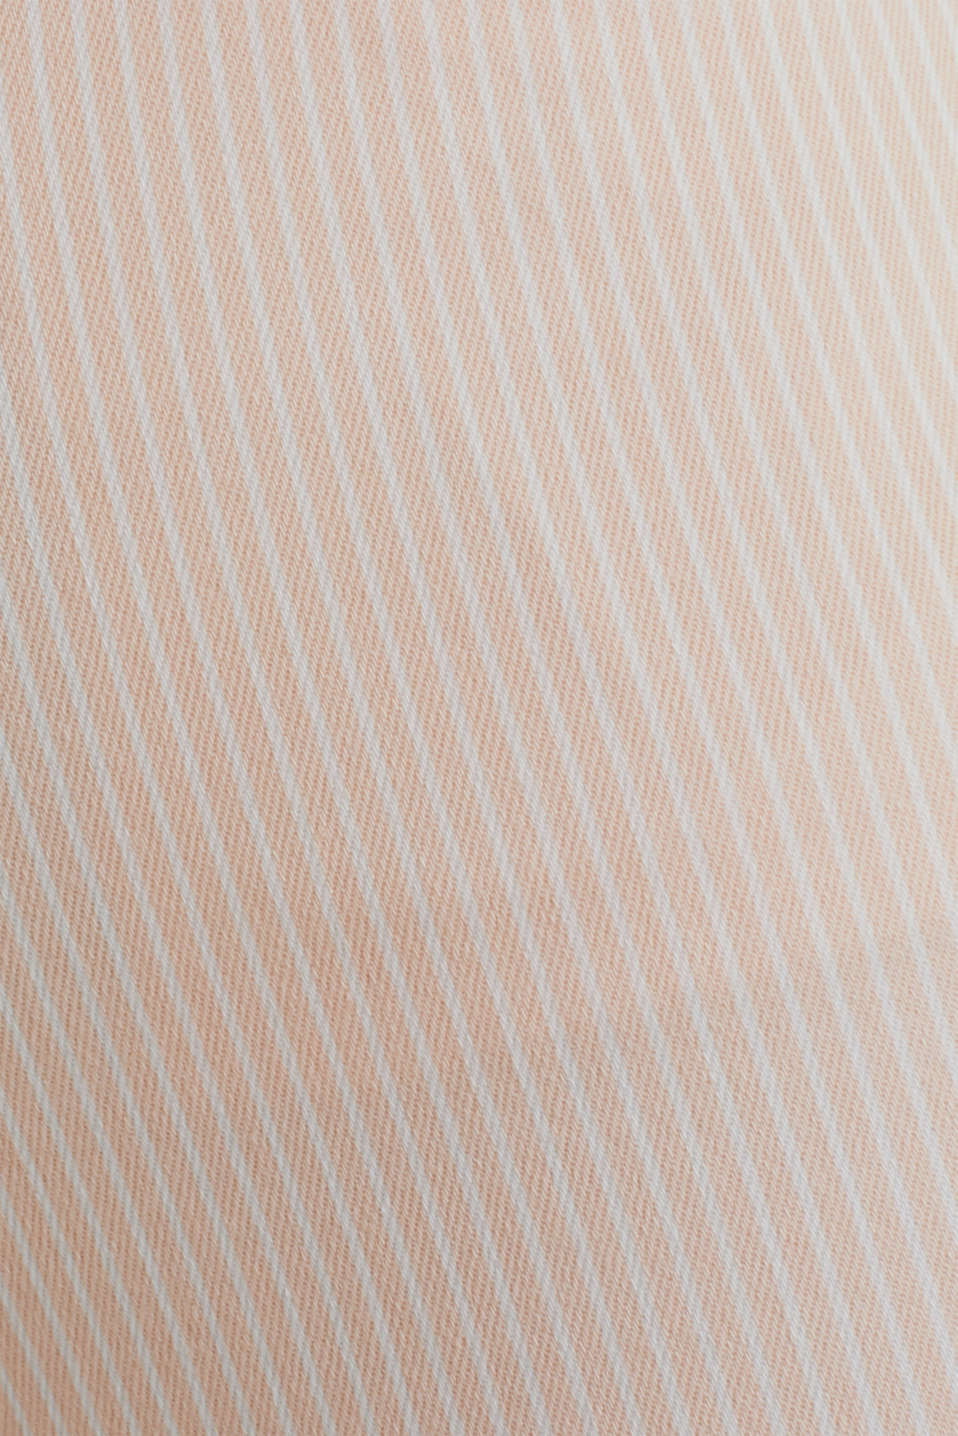 REPREVE striped Trousers, recycled, PEACH, detail image number 4